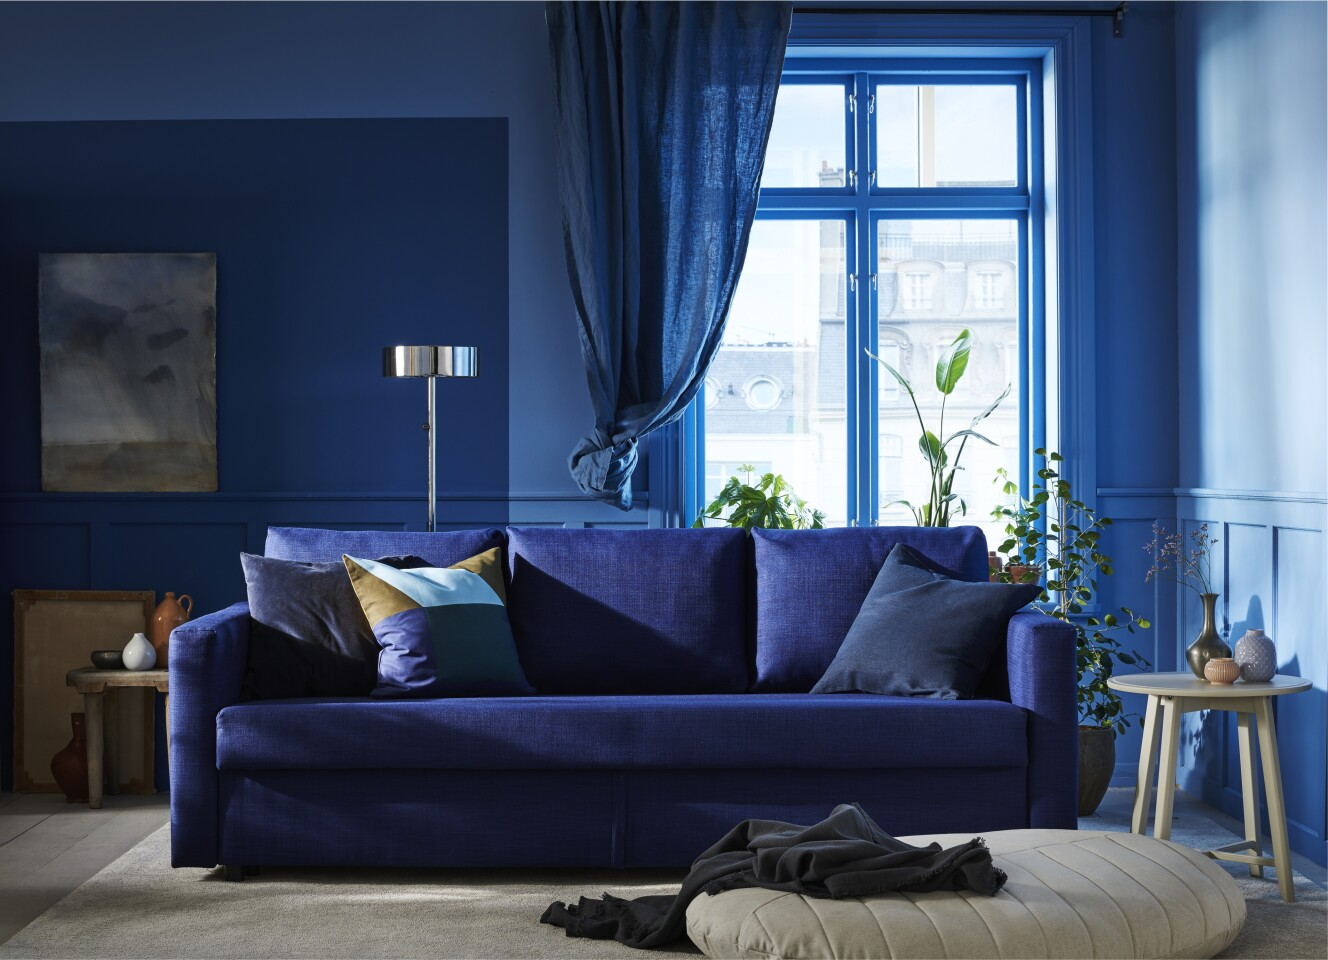 Ikea's Friheten sleeper sofa in blue, $399, is just the right tone for the Pantone Color of the Year 2020.